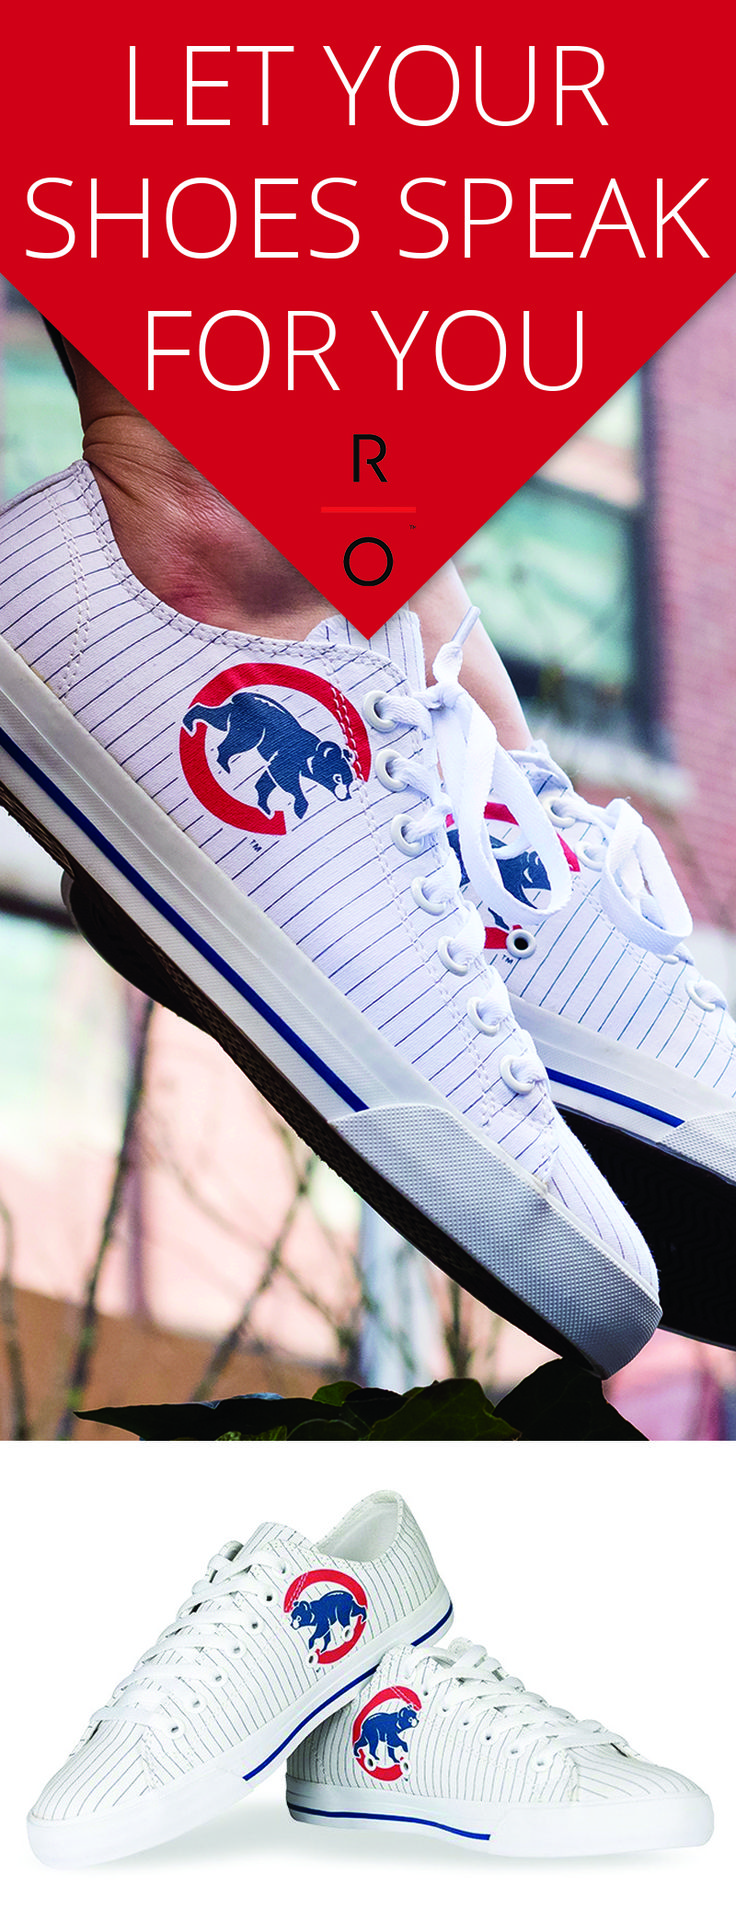 Row One offers a unique line of footwear that allows fans to show their loyalty to their favorite teams and schools.   https://www.rowonebrands.com/collections/chicago-cubs?utm_source=Pinterest&utm_medium=16.1P